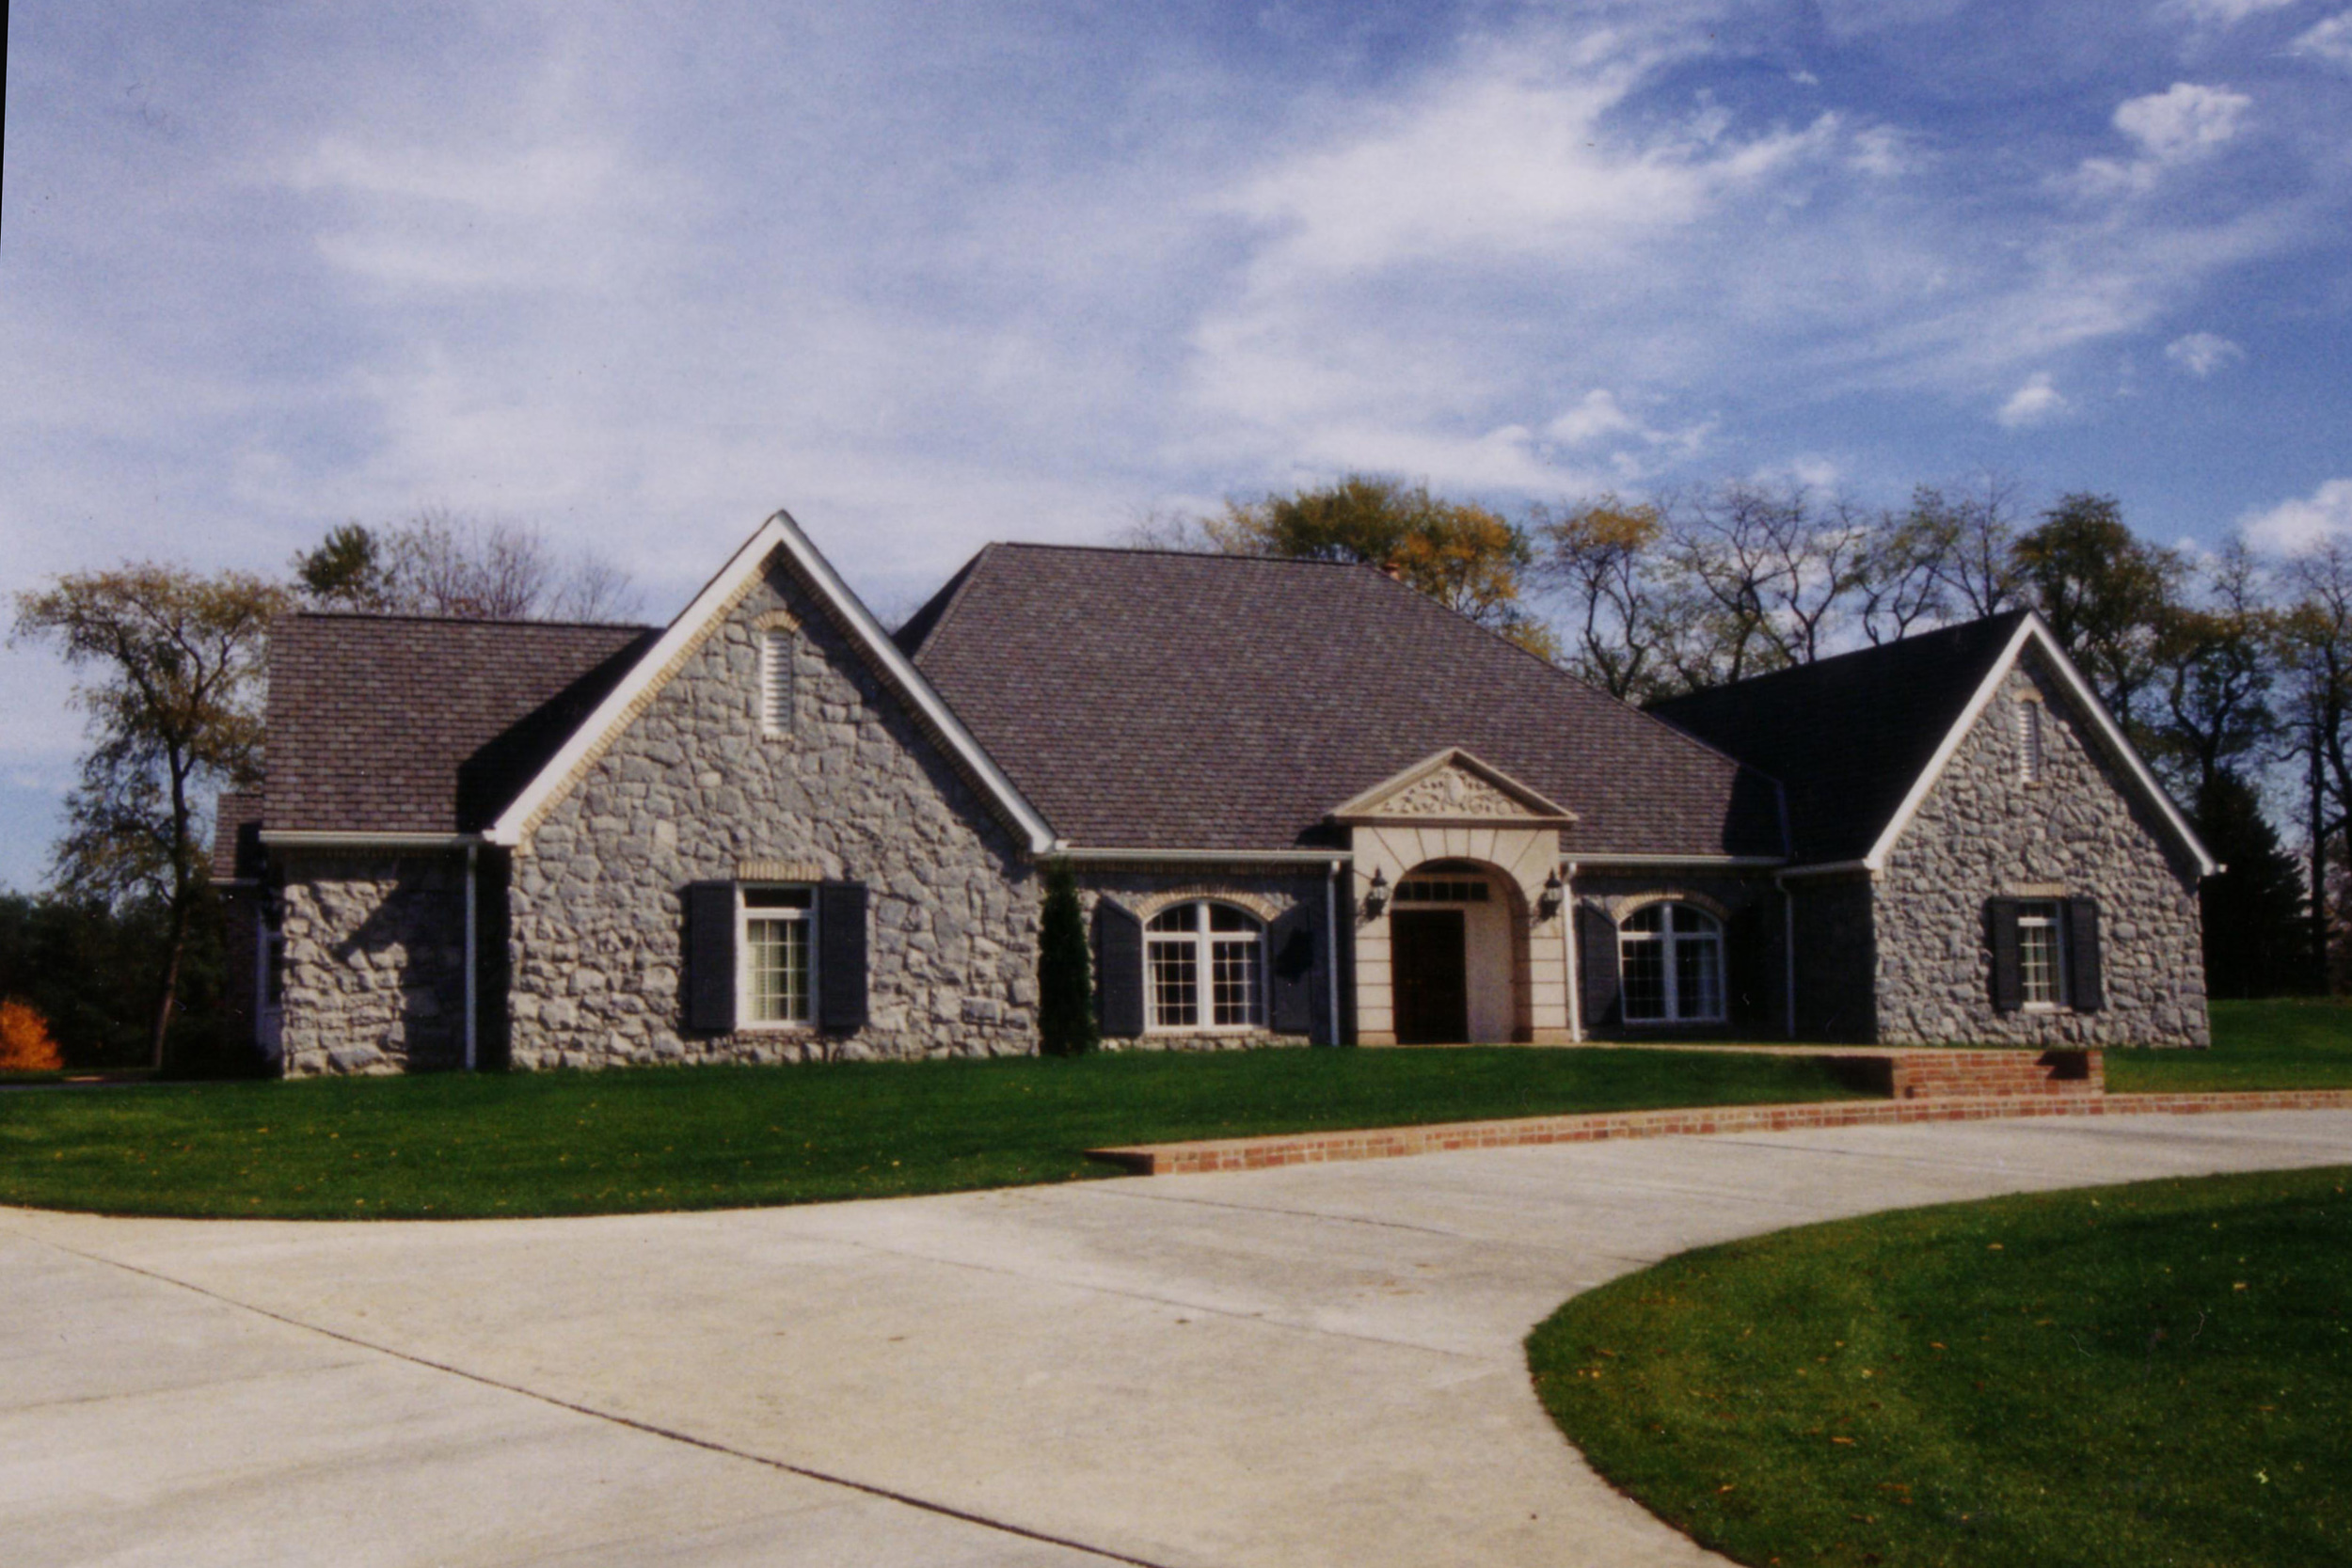 Private Residence (new construction - exterior)